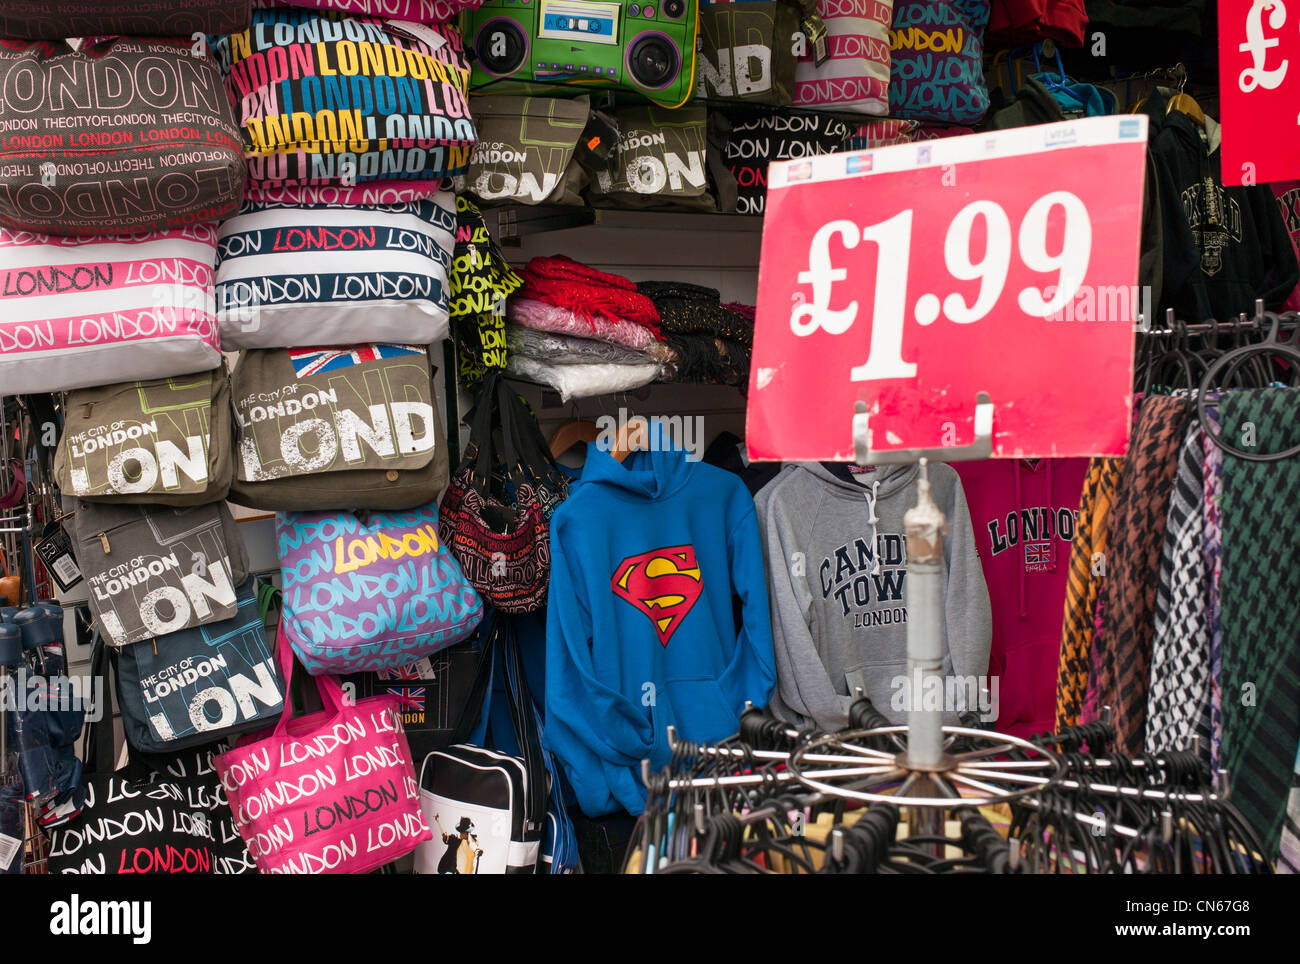 close up photograph of london souvenirs in shop in camden market stock photo royalty free image. Black Bedroom Furniture Sets. Home Design Ideas